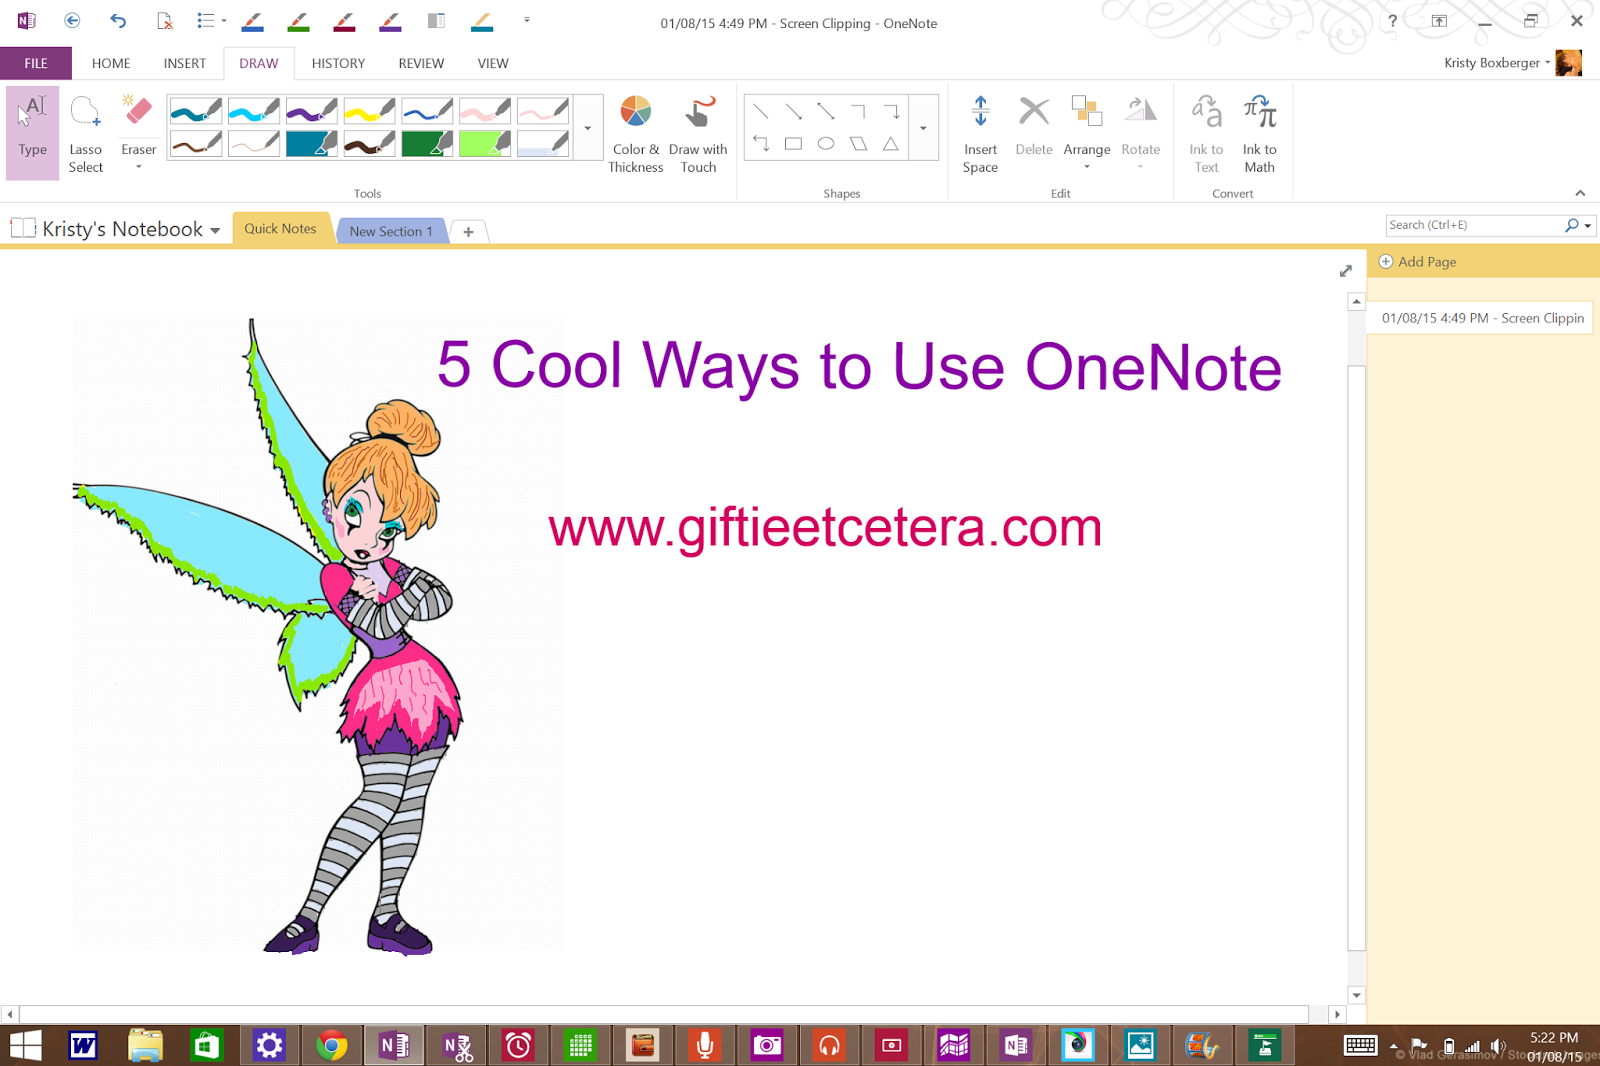 OneNote, Surface Pro 3, surface tricks and tips